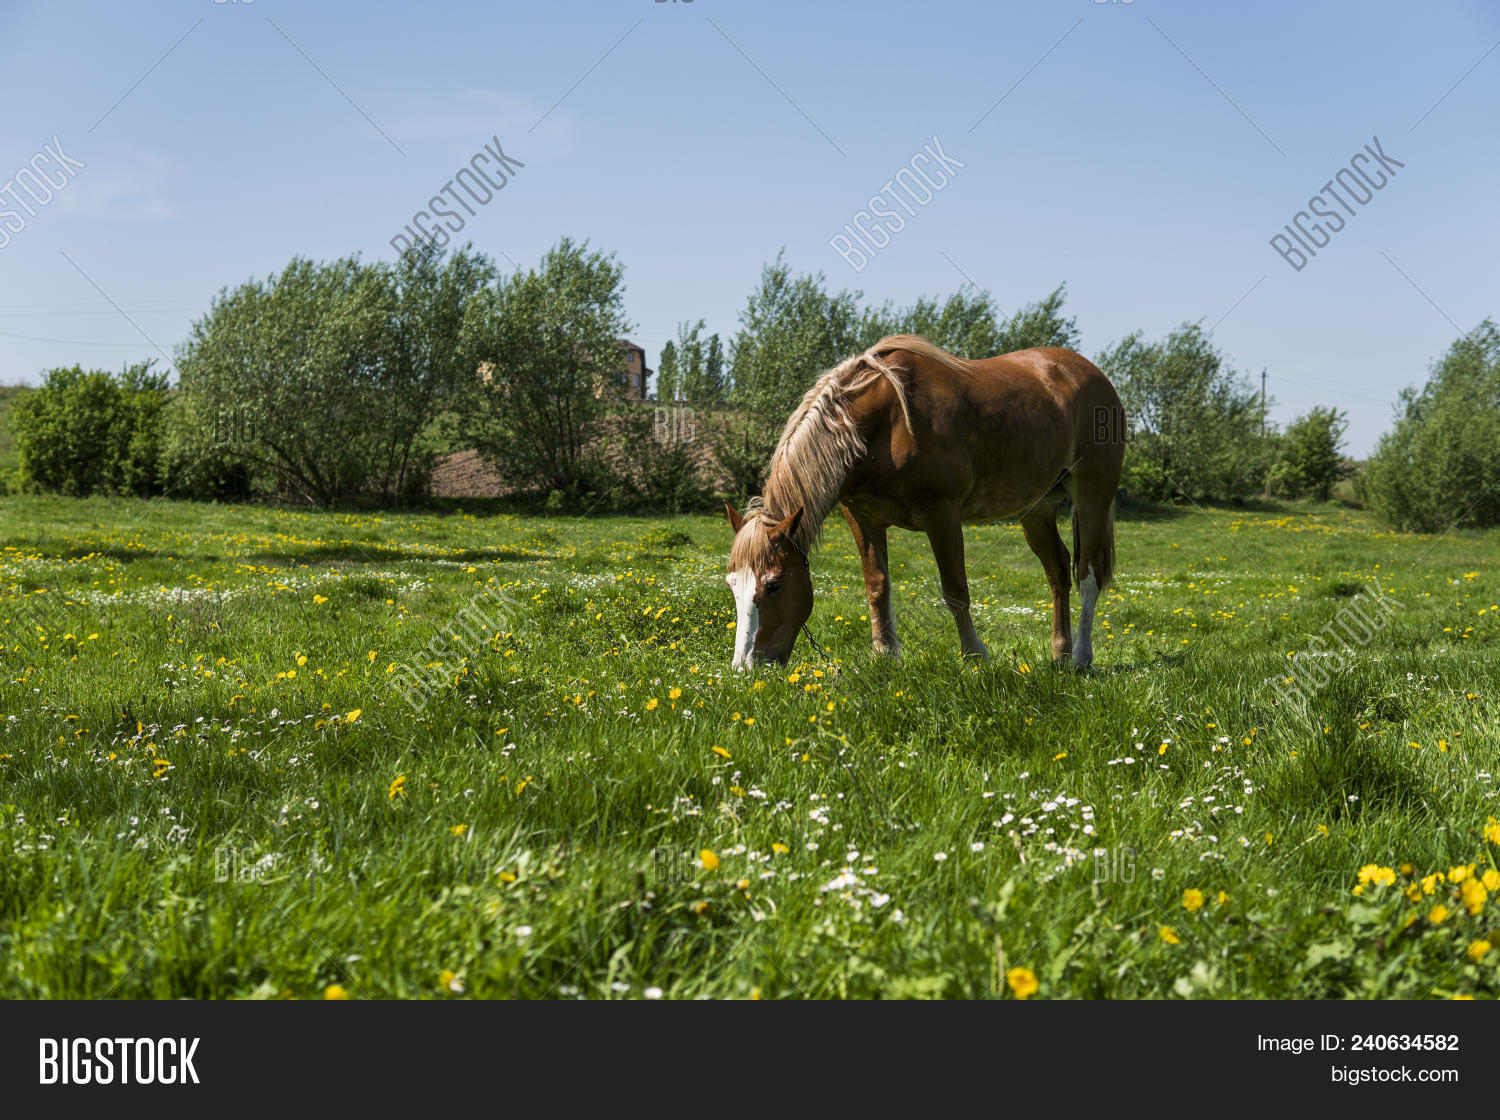 Alone Brown Horse On Image Photo Free Trial Bigstock